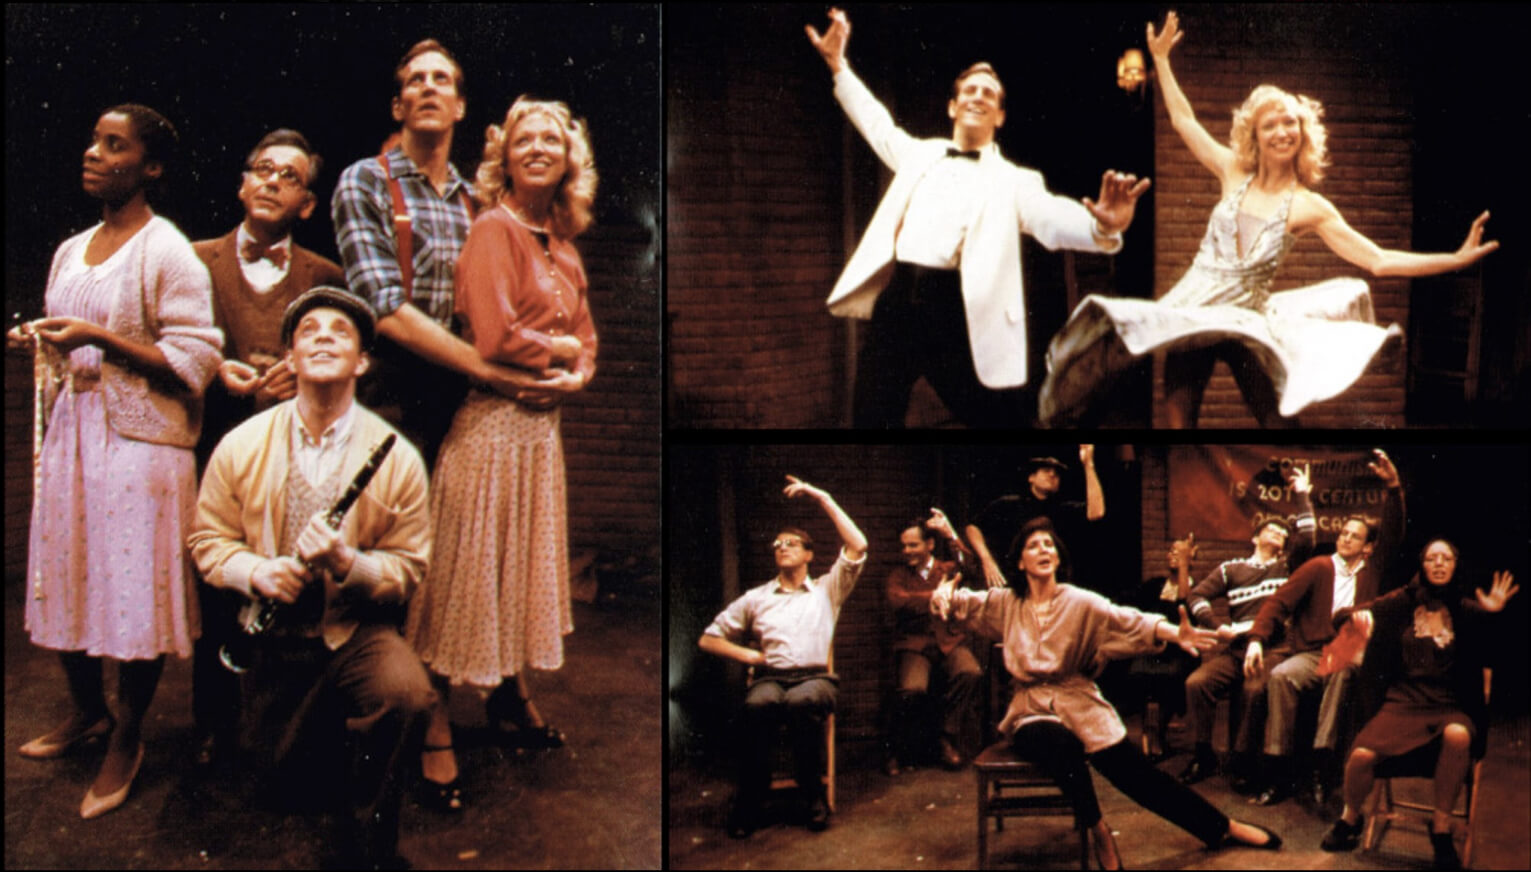 A photo collage featuring various musical numbers and the cast from Flora the Red Menace